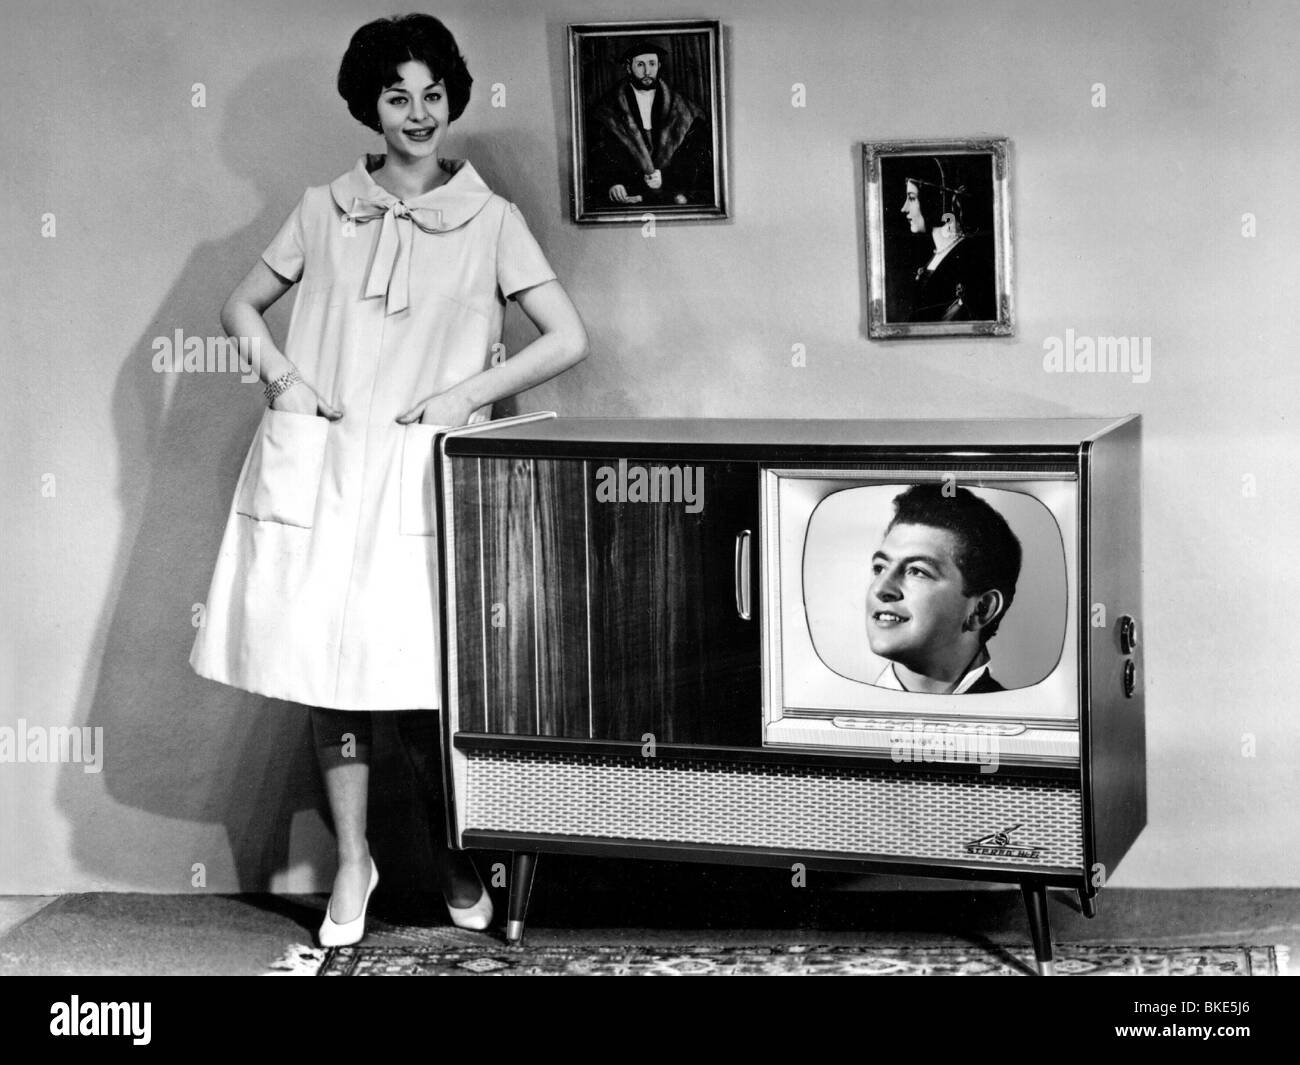 television set Find great deals on ebay for television set and vintage television set shop with confidence.